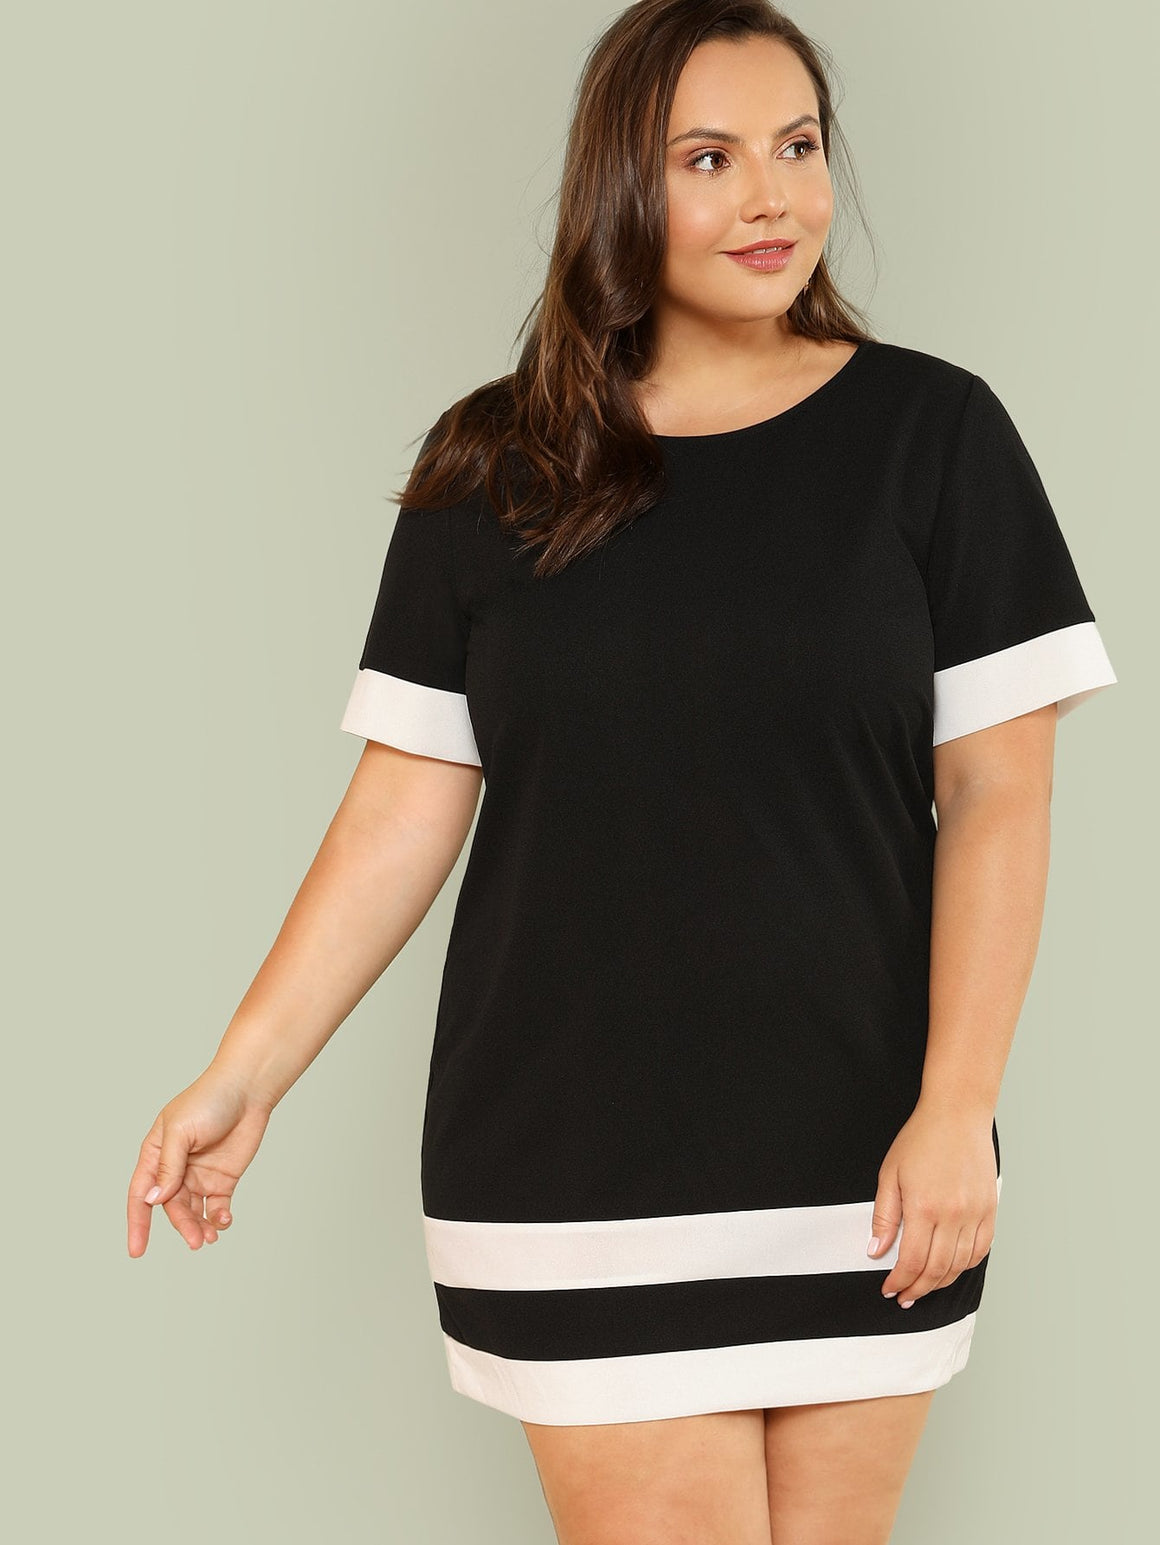 Black & White Panel Tunic Dress